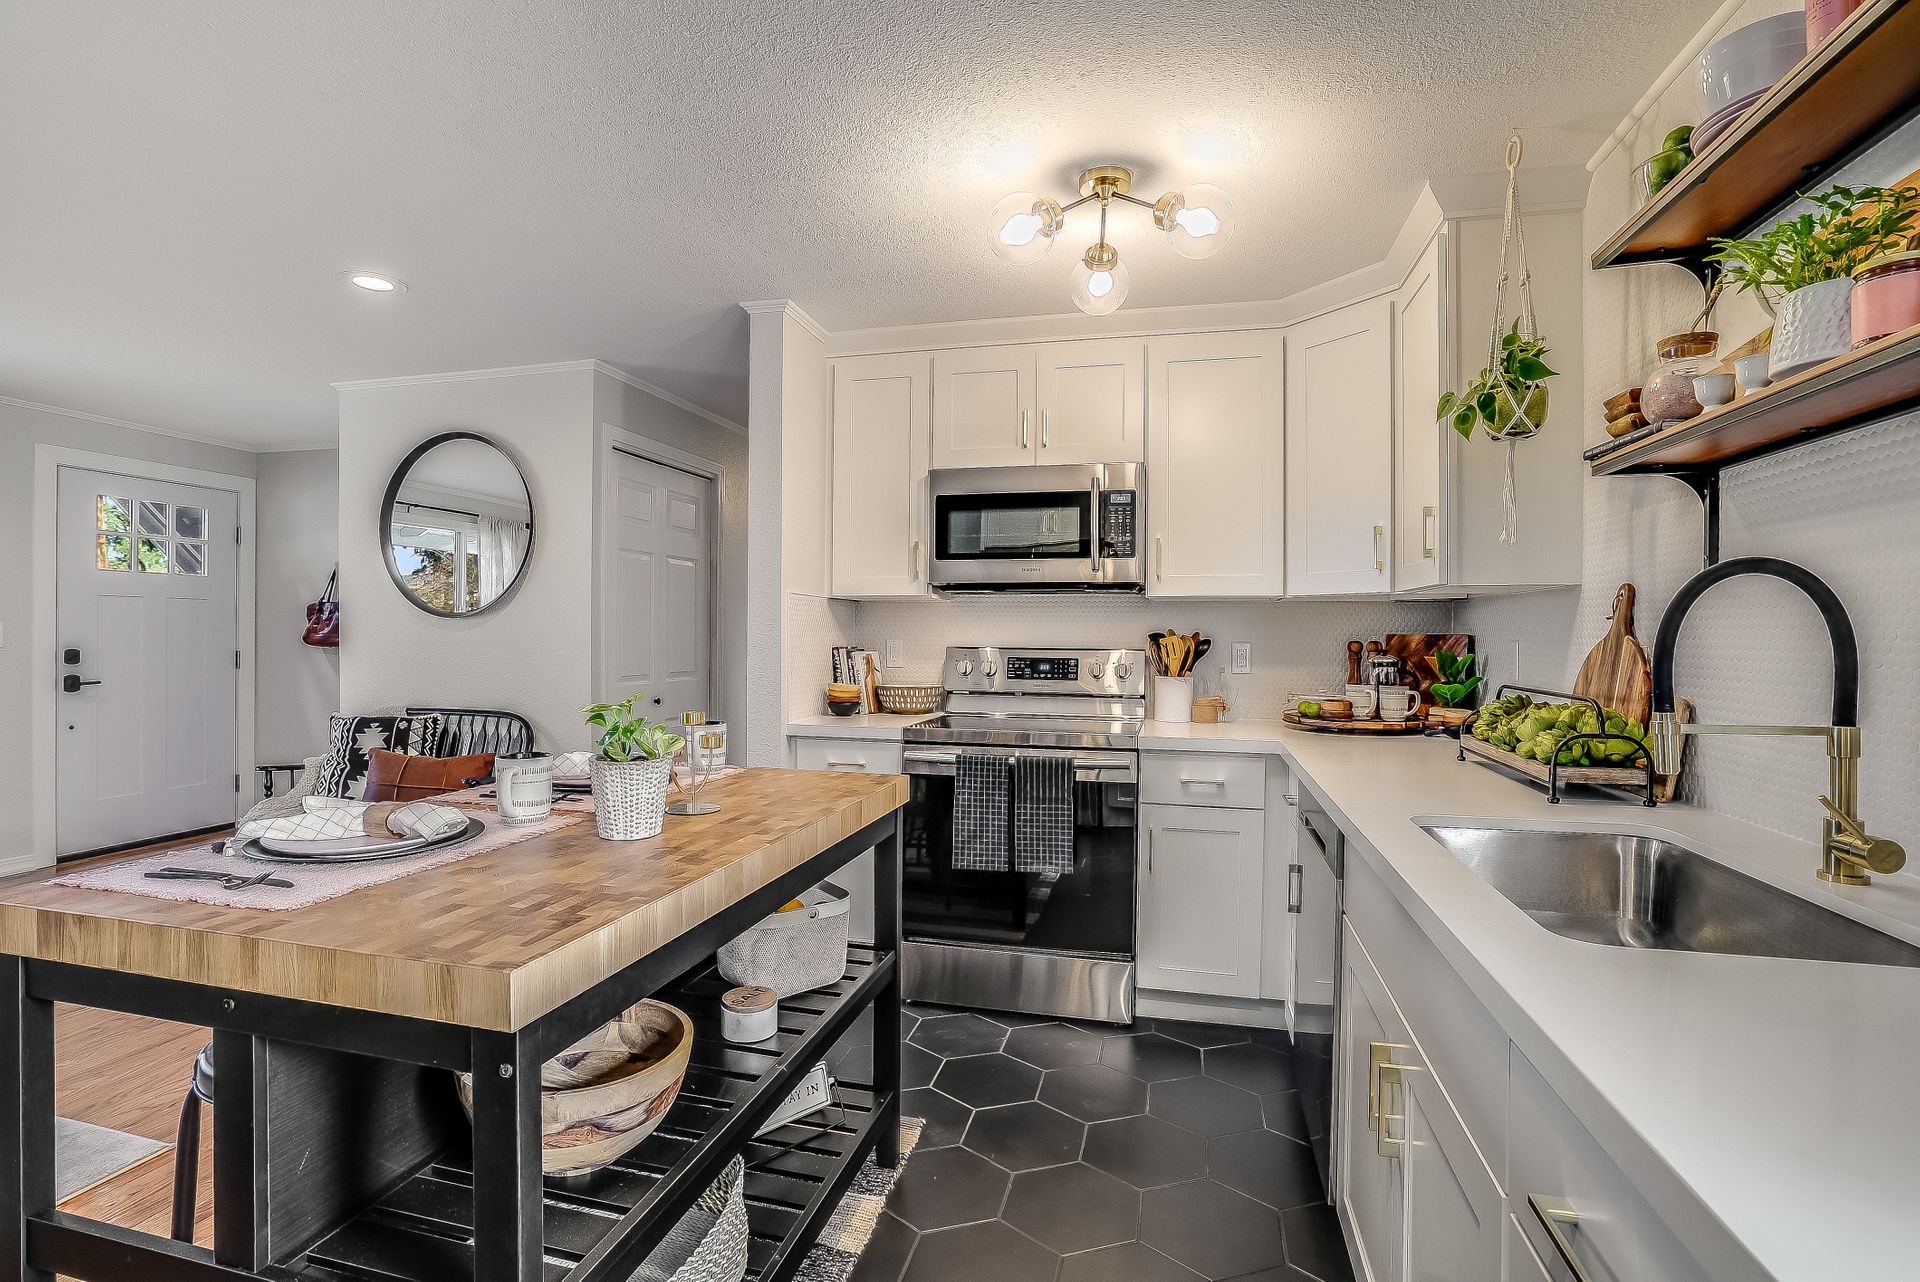 farmhouse kitchen style from JL Remodeling